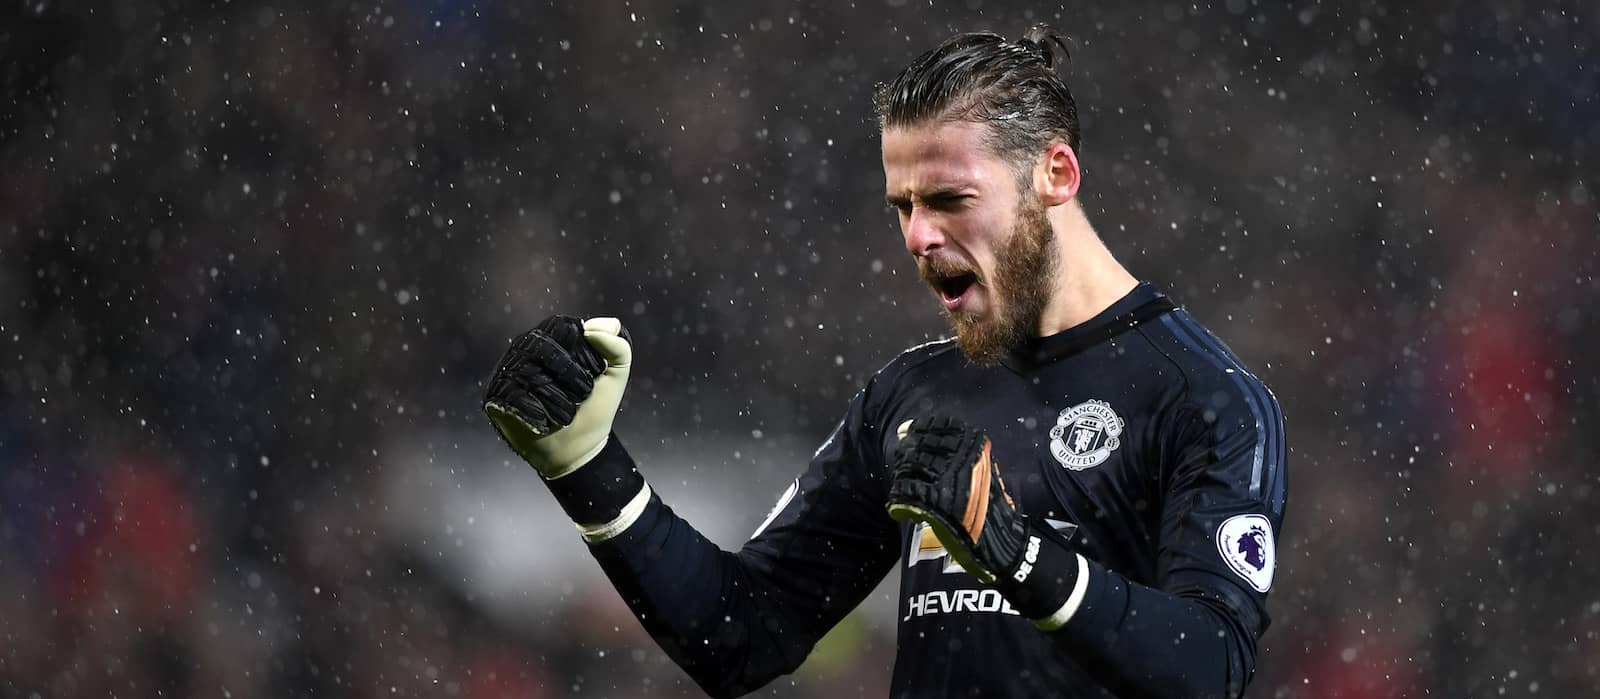 David de Gea expected to sign new Manchester United deal soon